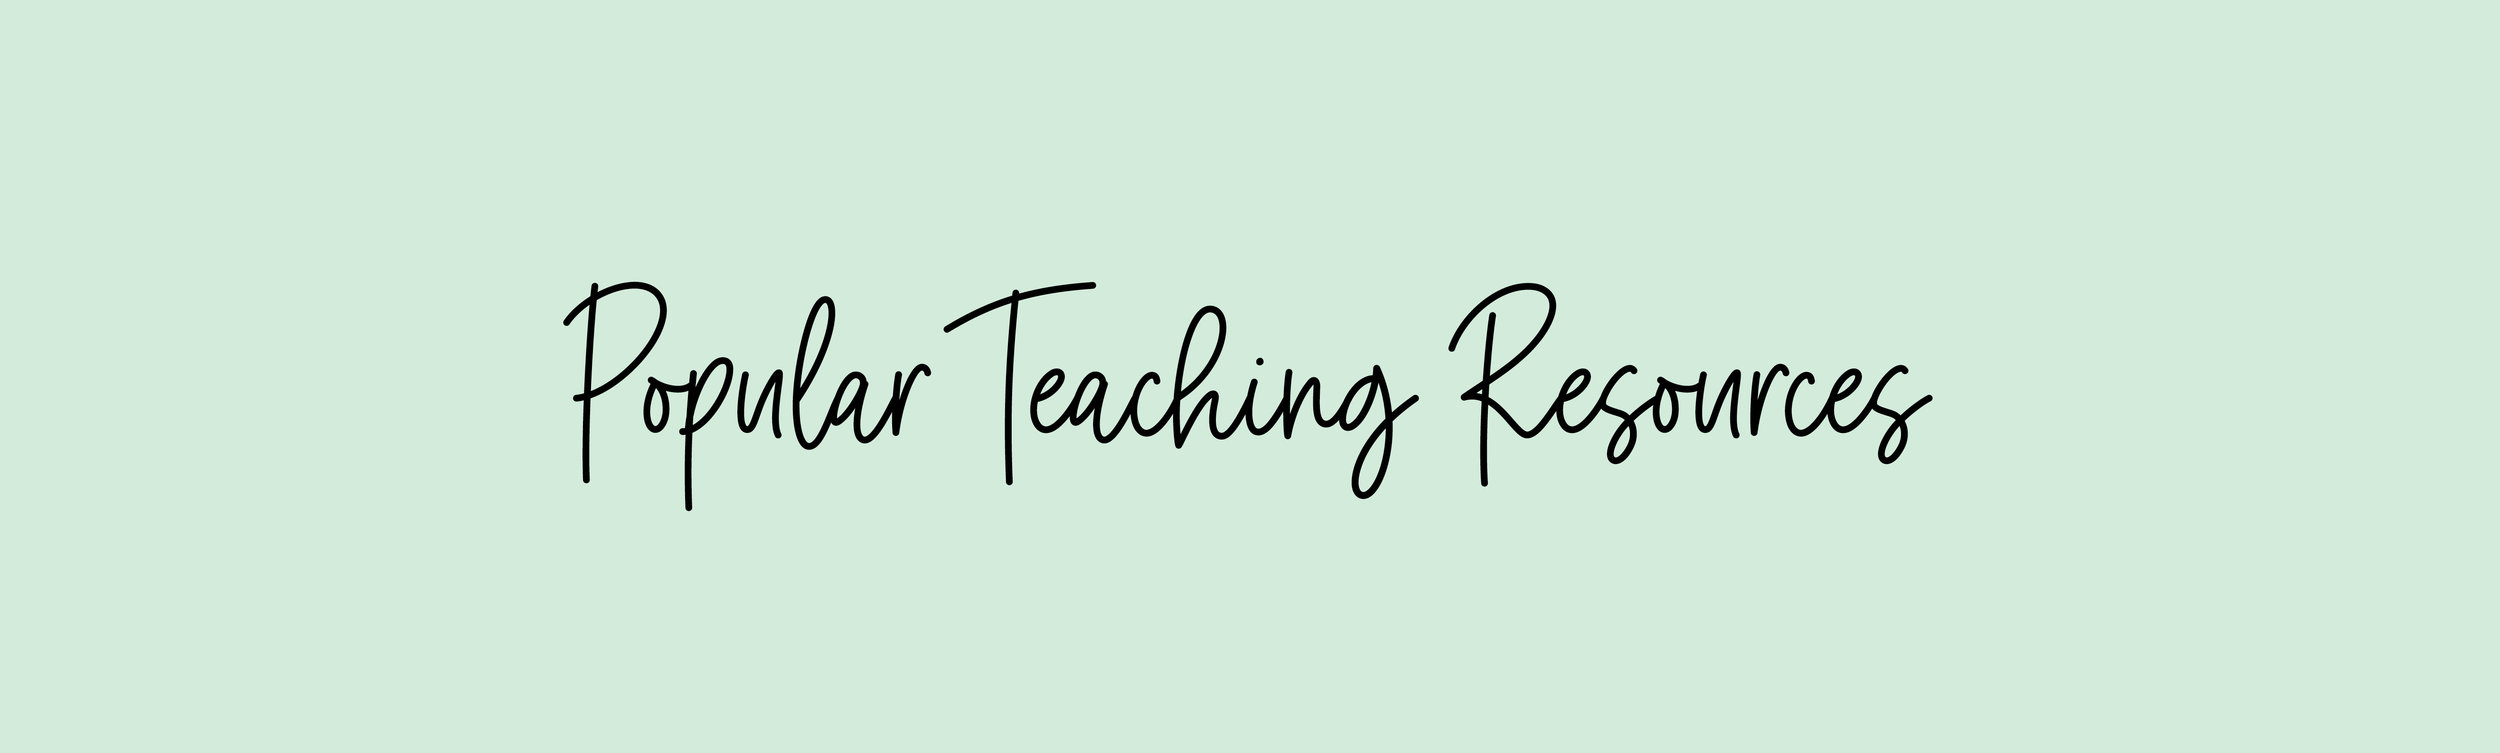 resources | everything just so  Our teaching resources and courses for Upper Elementary teachers simplify their workload and save them time. | everythingjustso.org